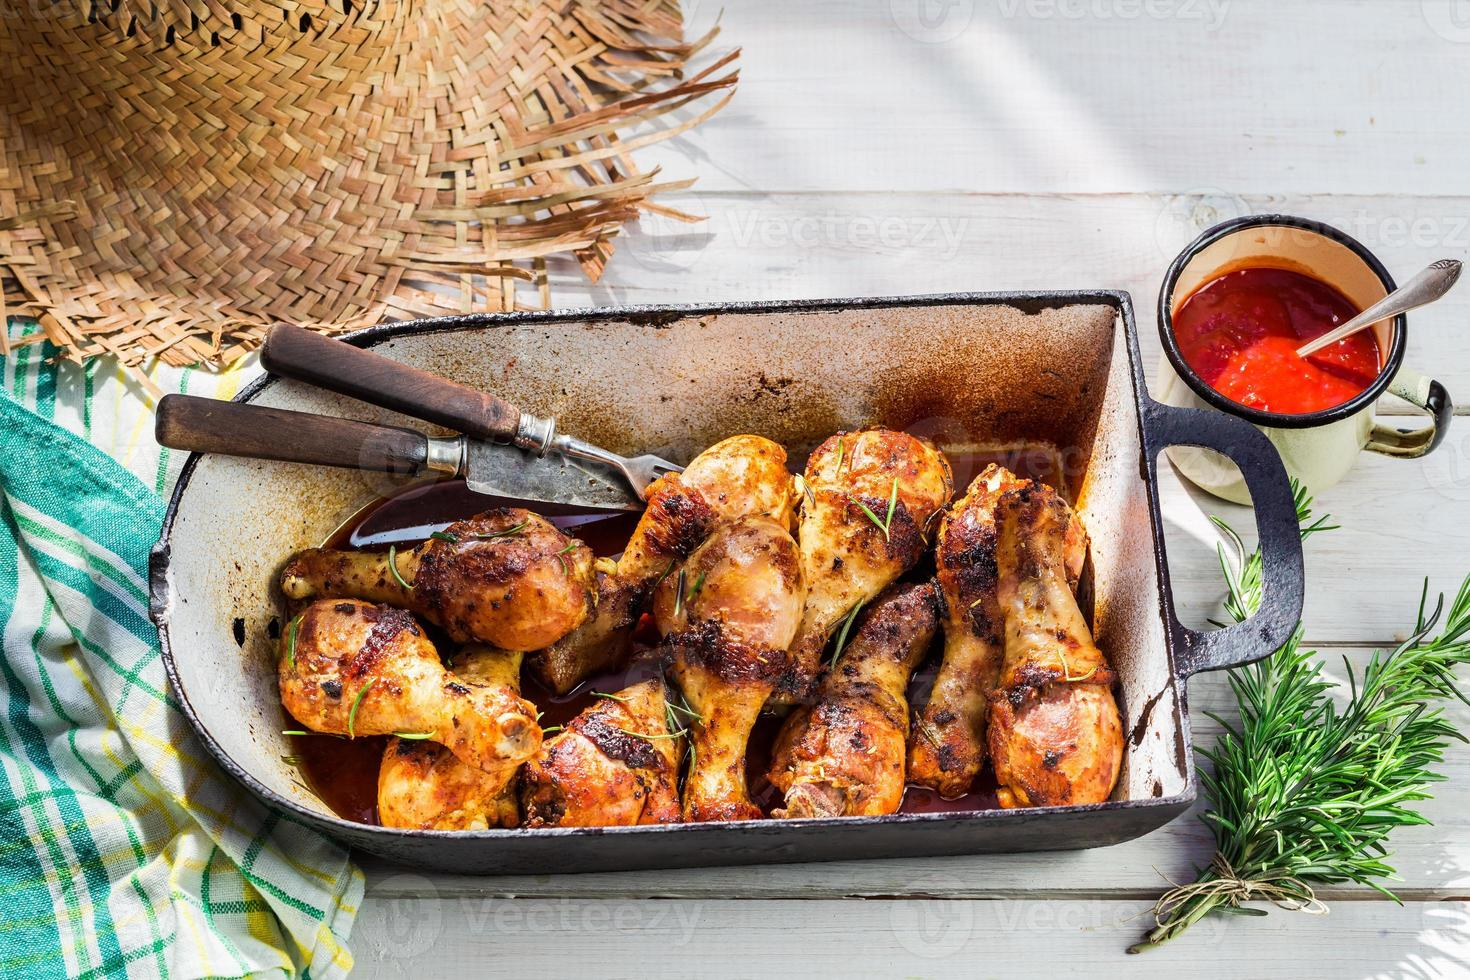 Hot chicken legs with herbs and sauce in rustic kitchen photo